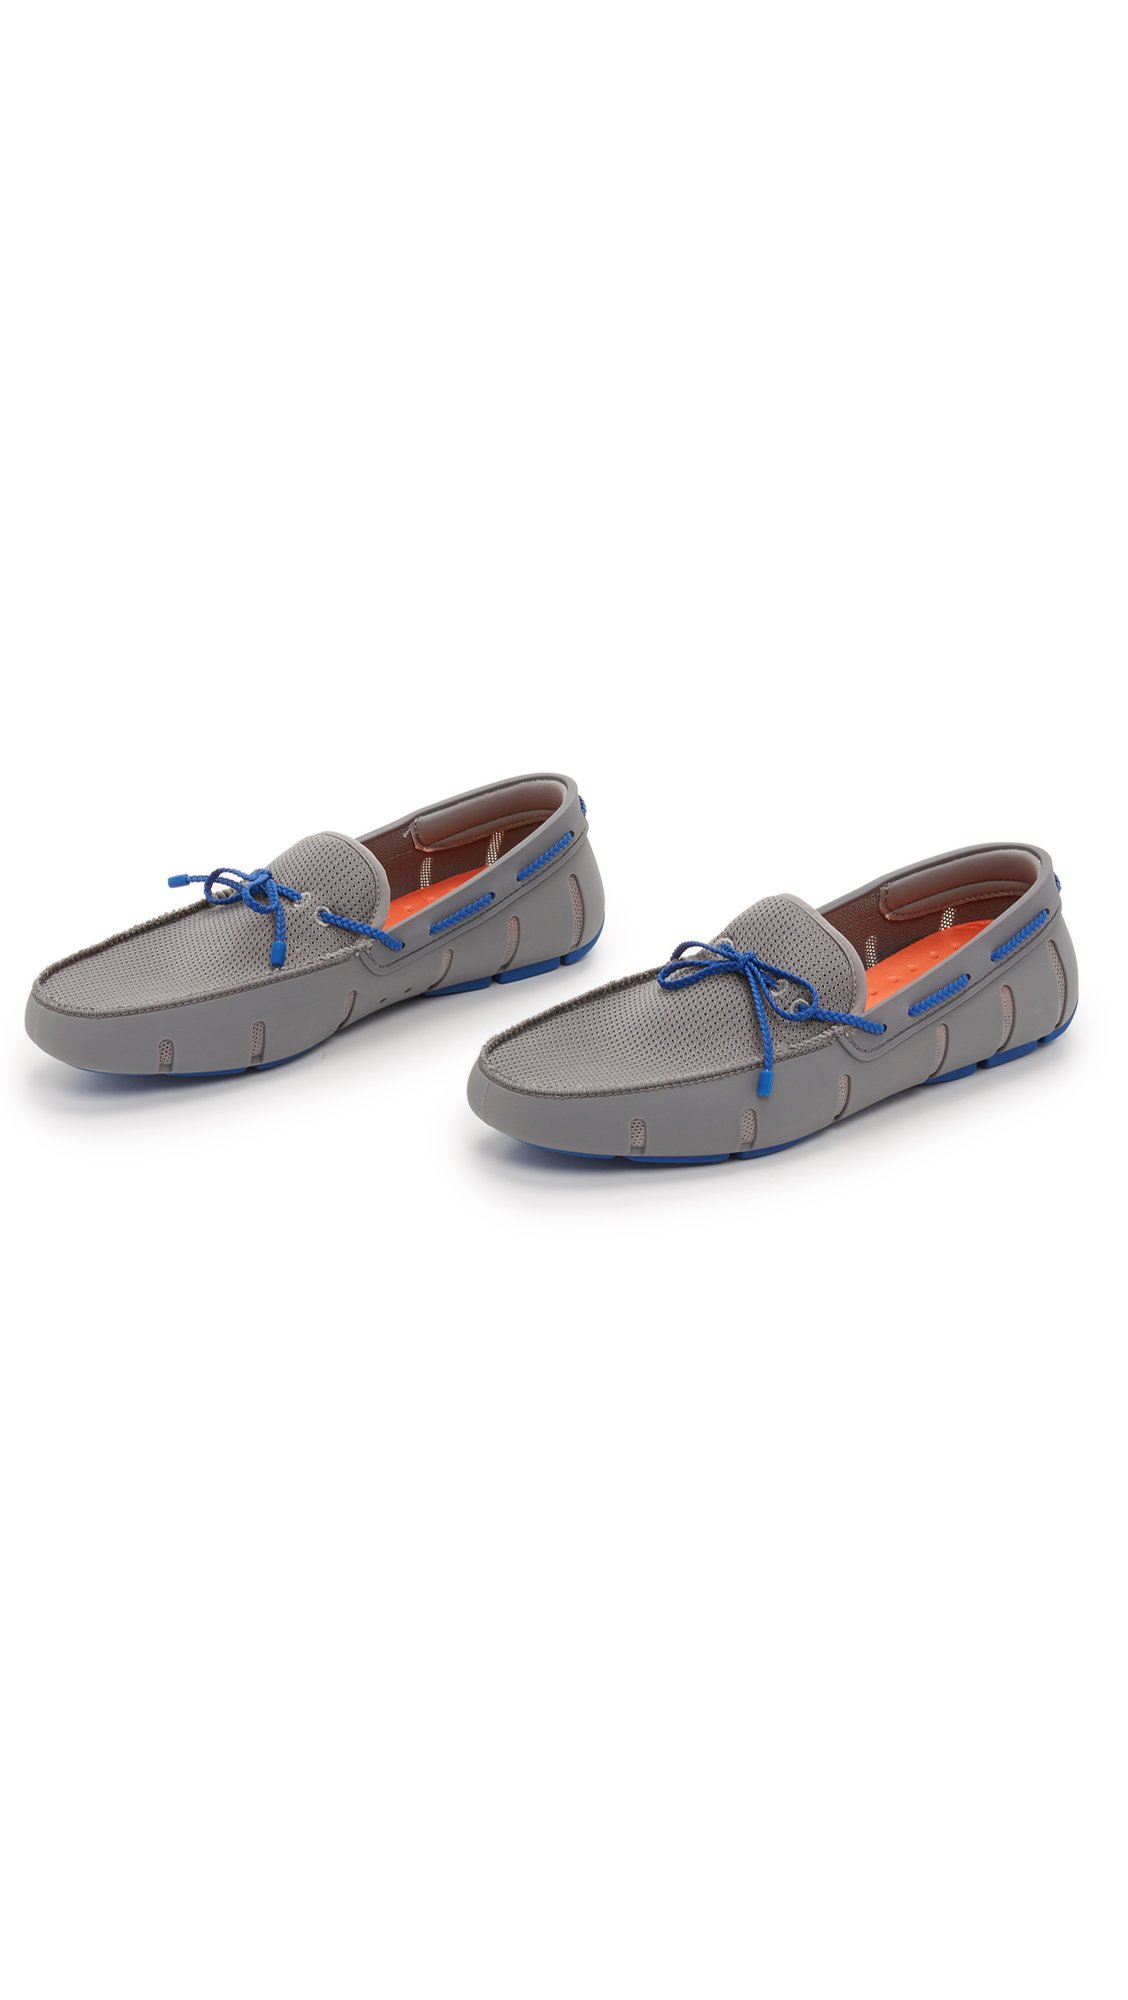 SWIMS Men's Braided Lace Loafers, Grey/Blue, 7 D(M) US by SWIMS (Image #5)